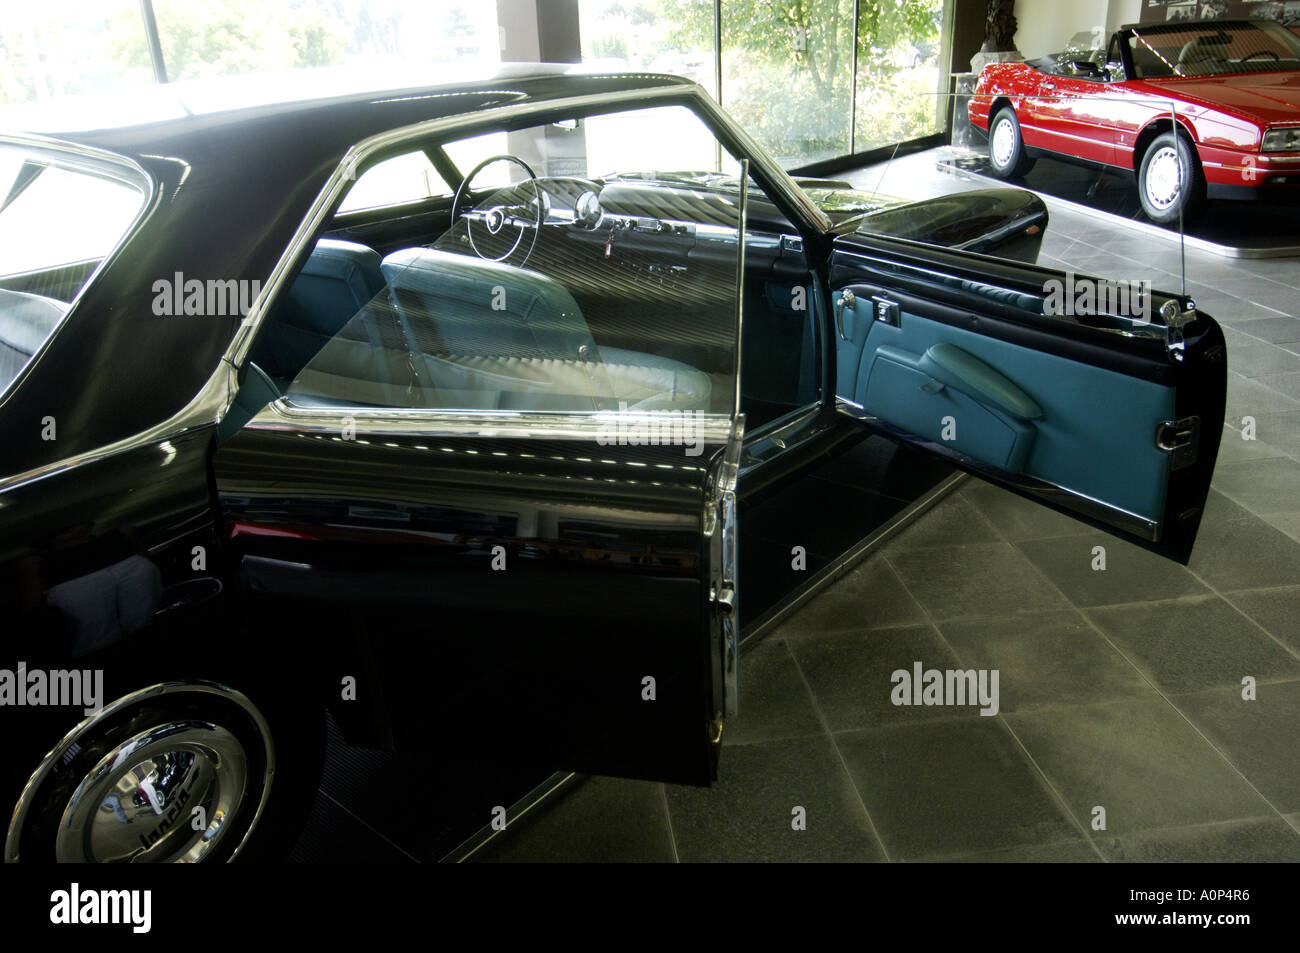 Turin an old model Lancia in the showroom of auto designer company Pinin Farina - Stock Image